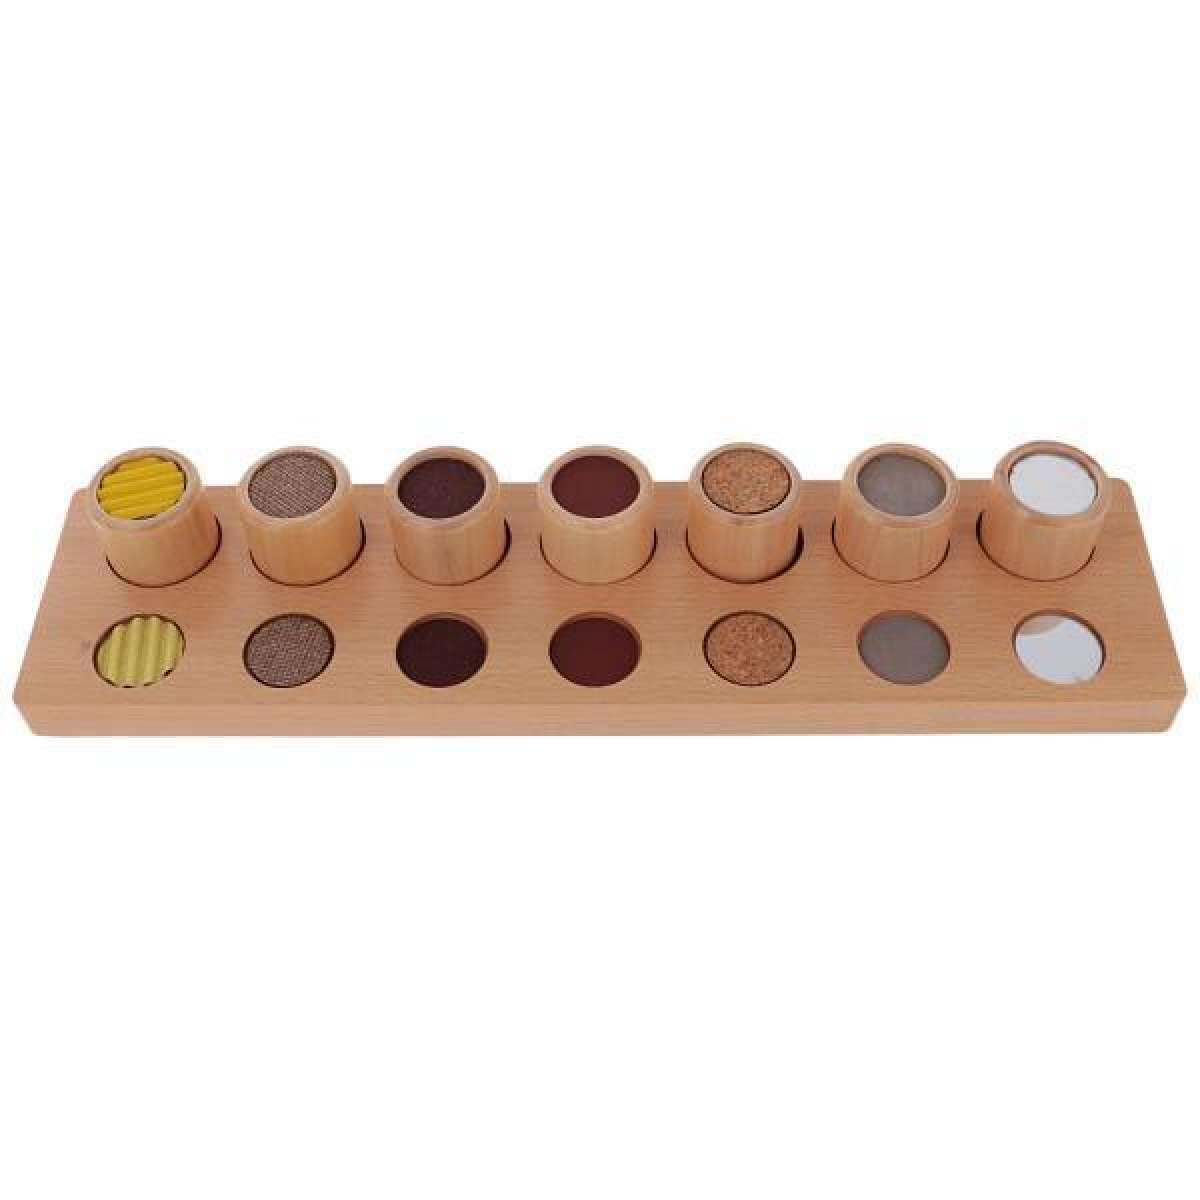 BolehDeals Montessori Wood Cylinders Touch Rough and Smooth Sensorial Material Kids Toy